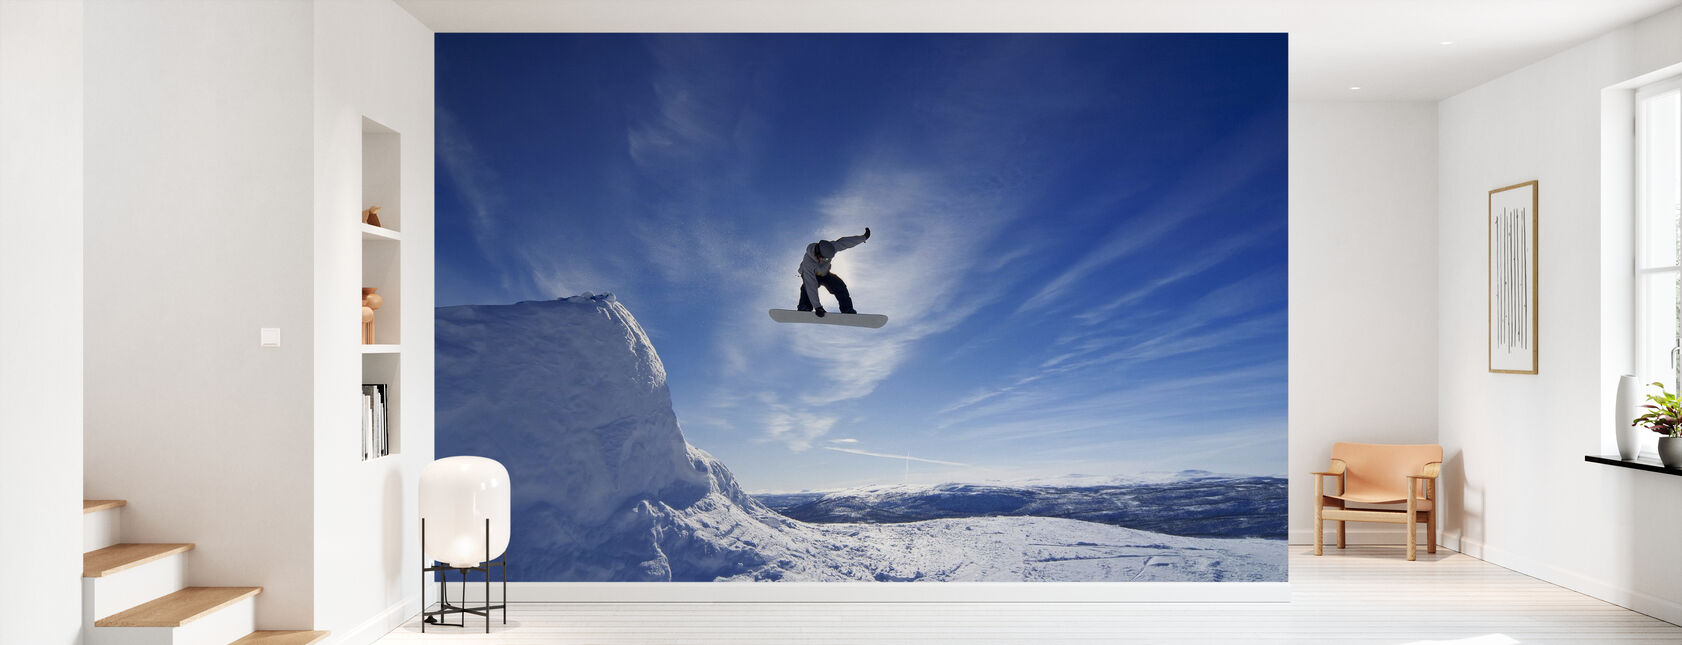 Snowboard Big Air Jump - Wallpaper - Hallway